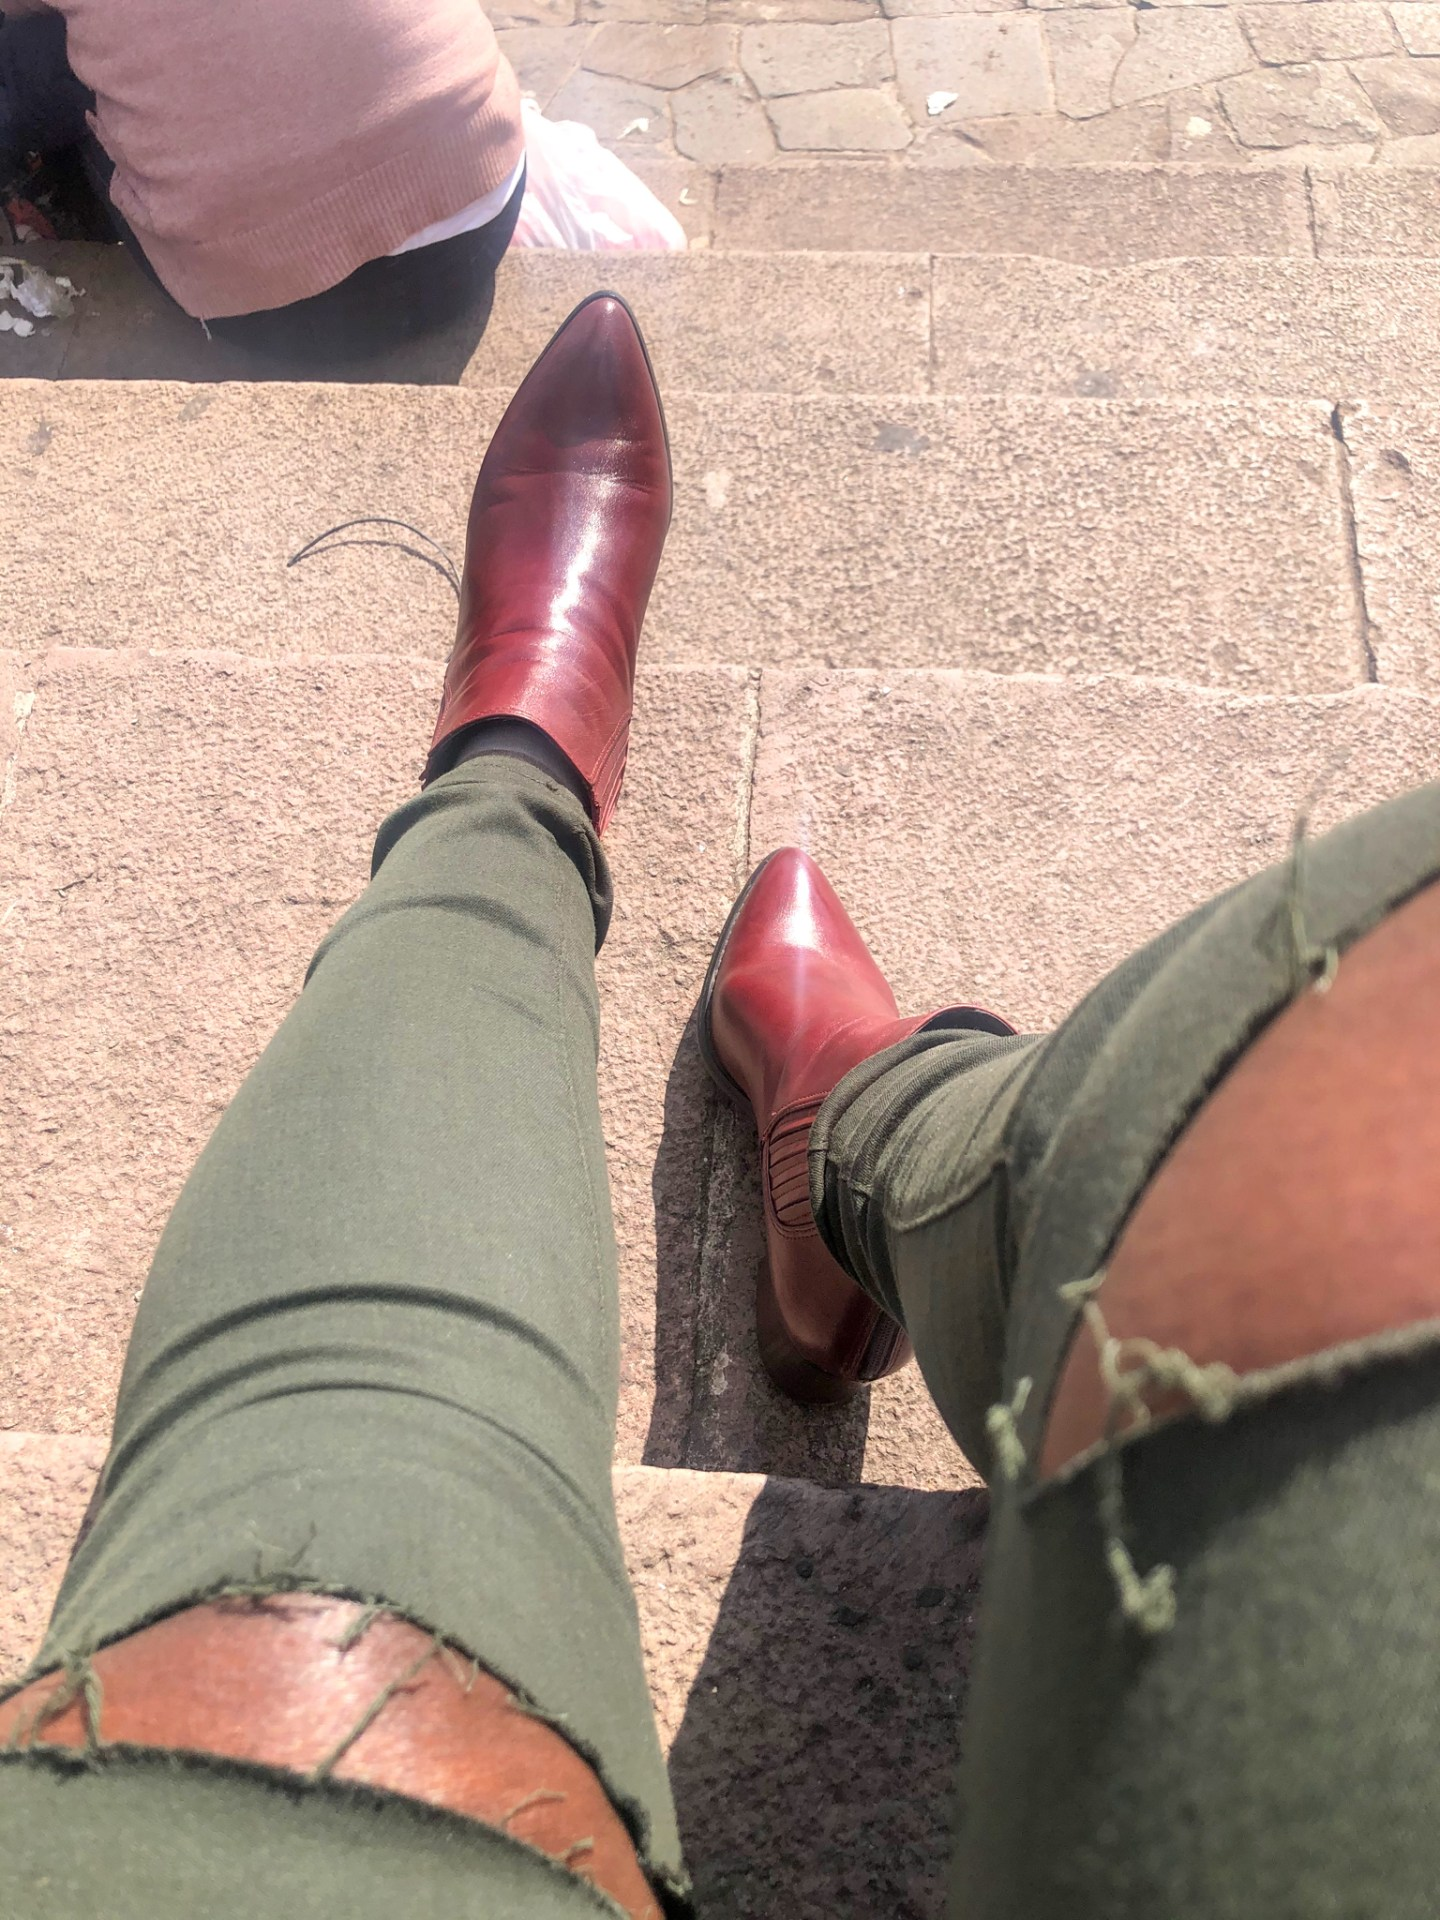 Fashionable jet setter wearing brown chelsea boots in Cusco Peru capitol.